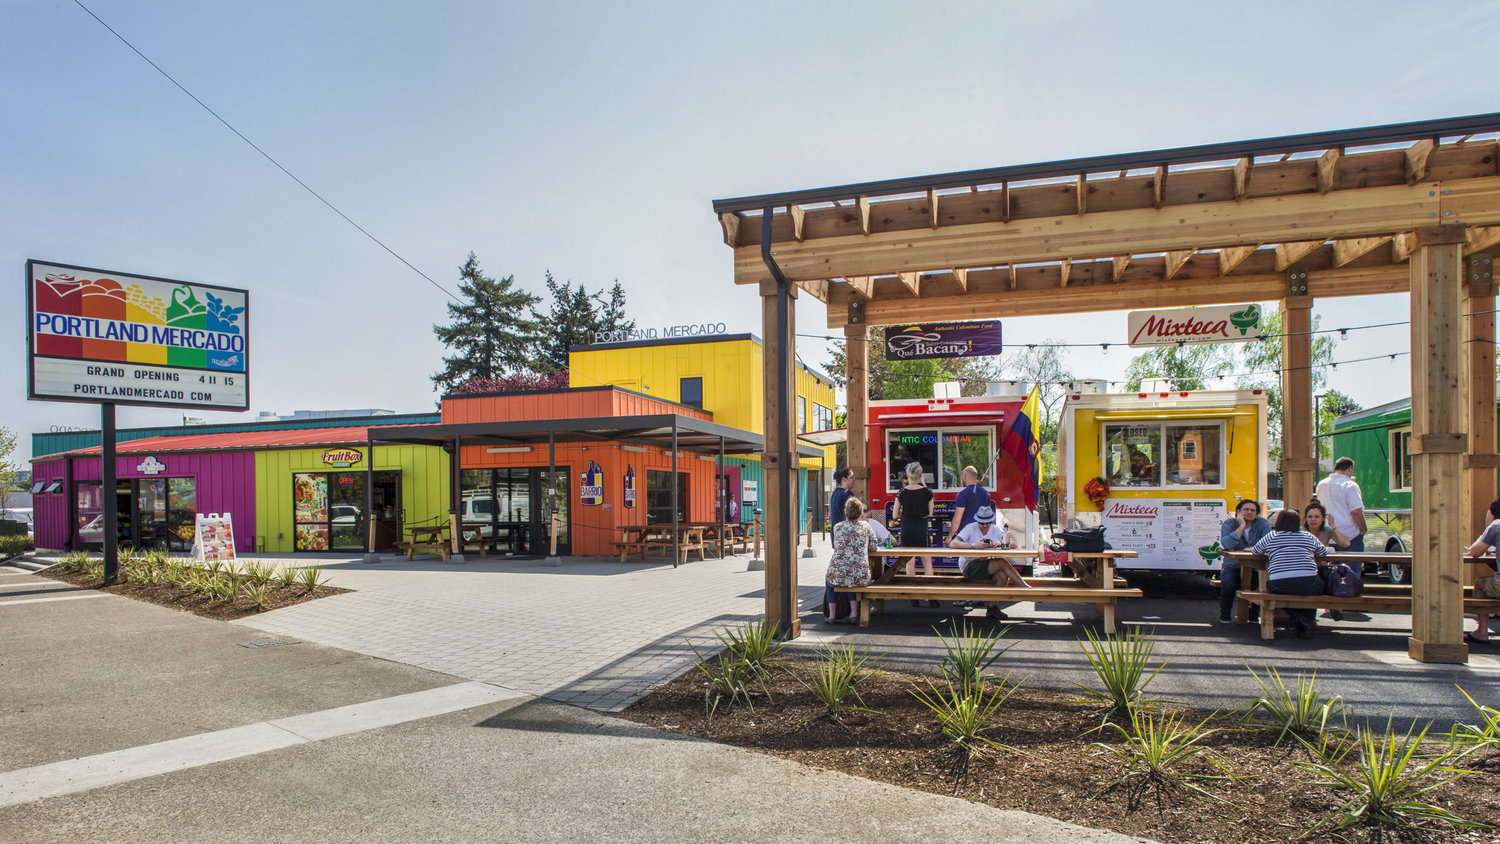 The Portland Mercado opened four years ago on a vacant car lot.